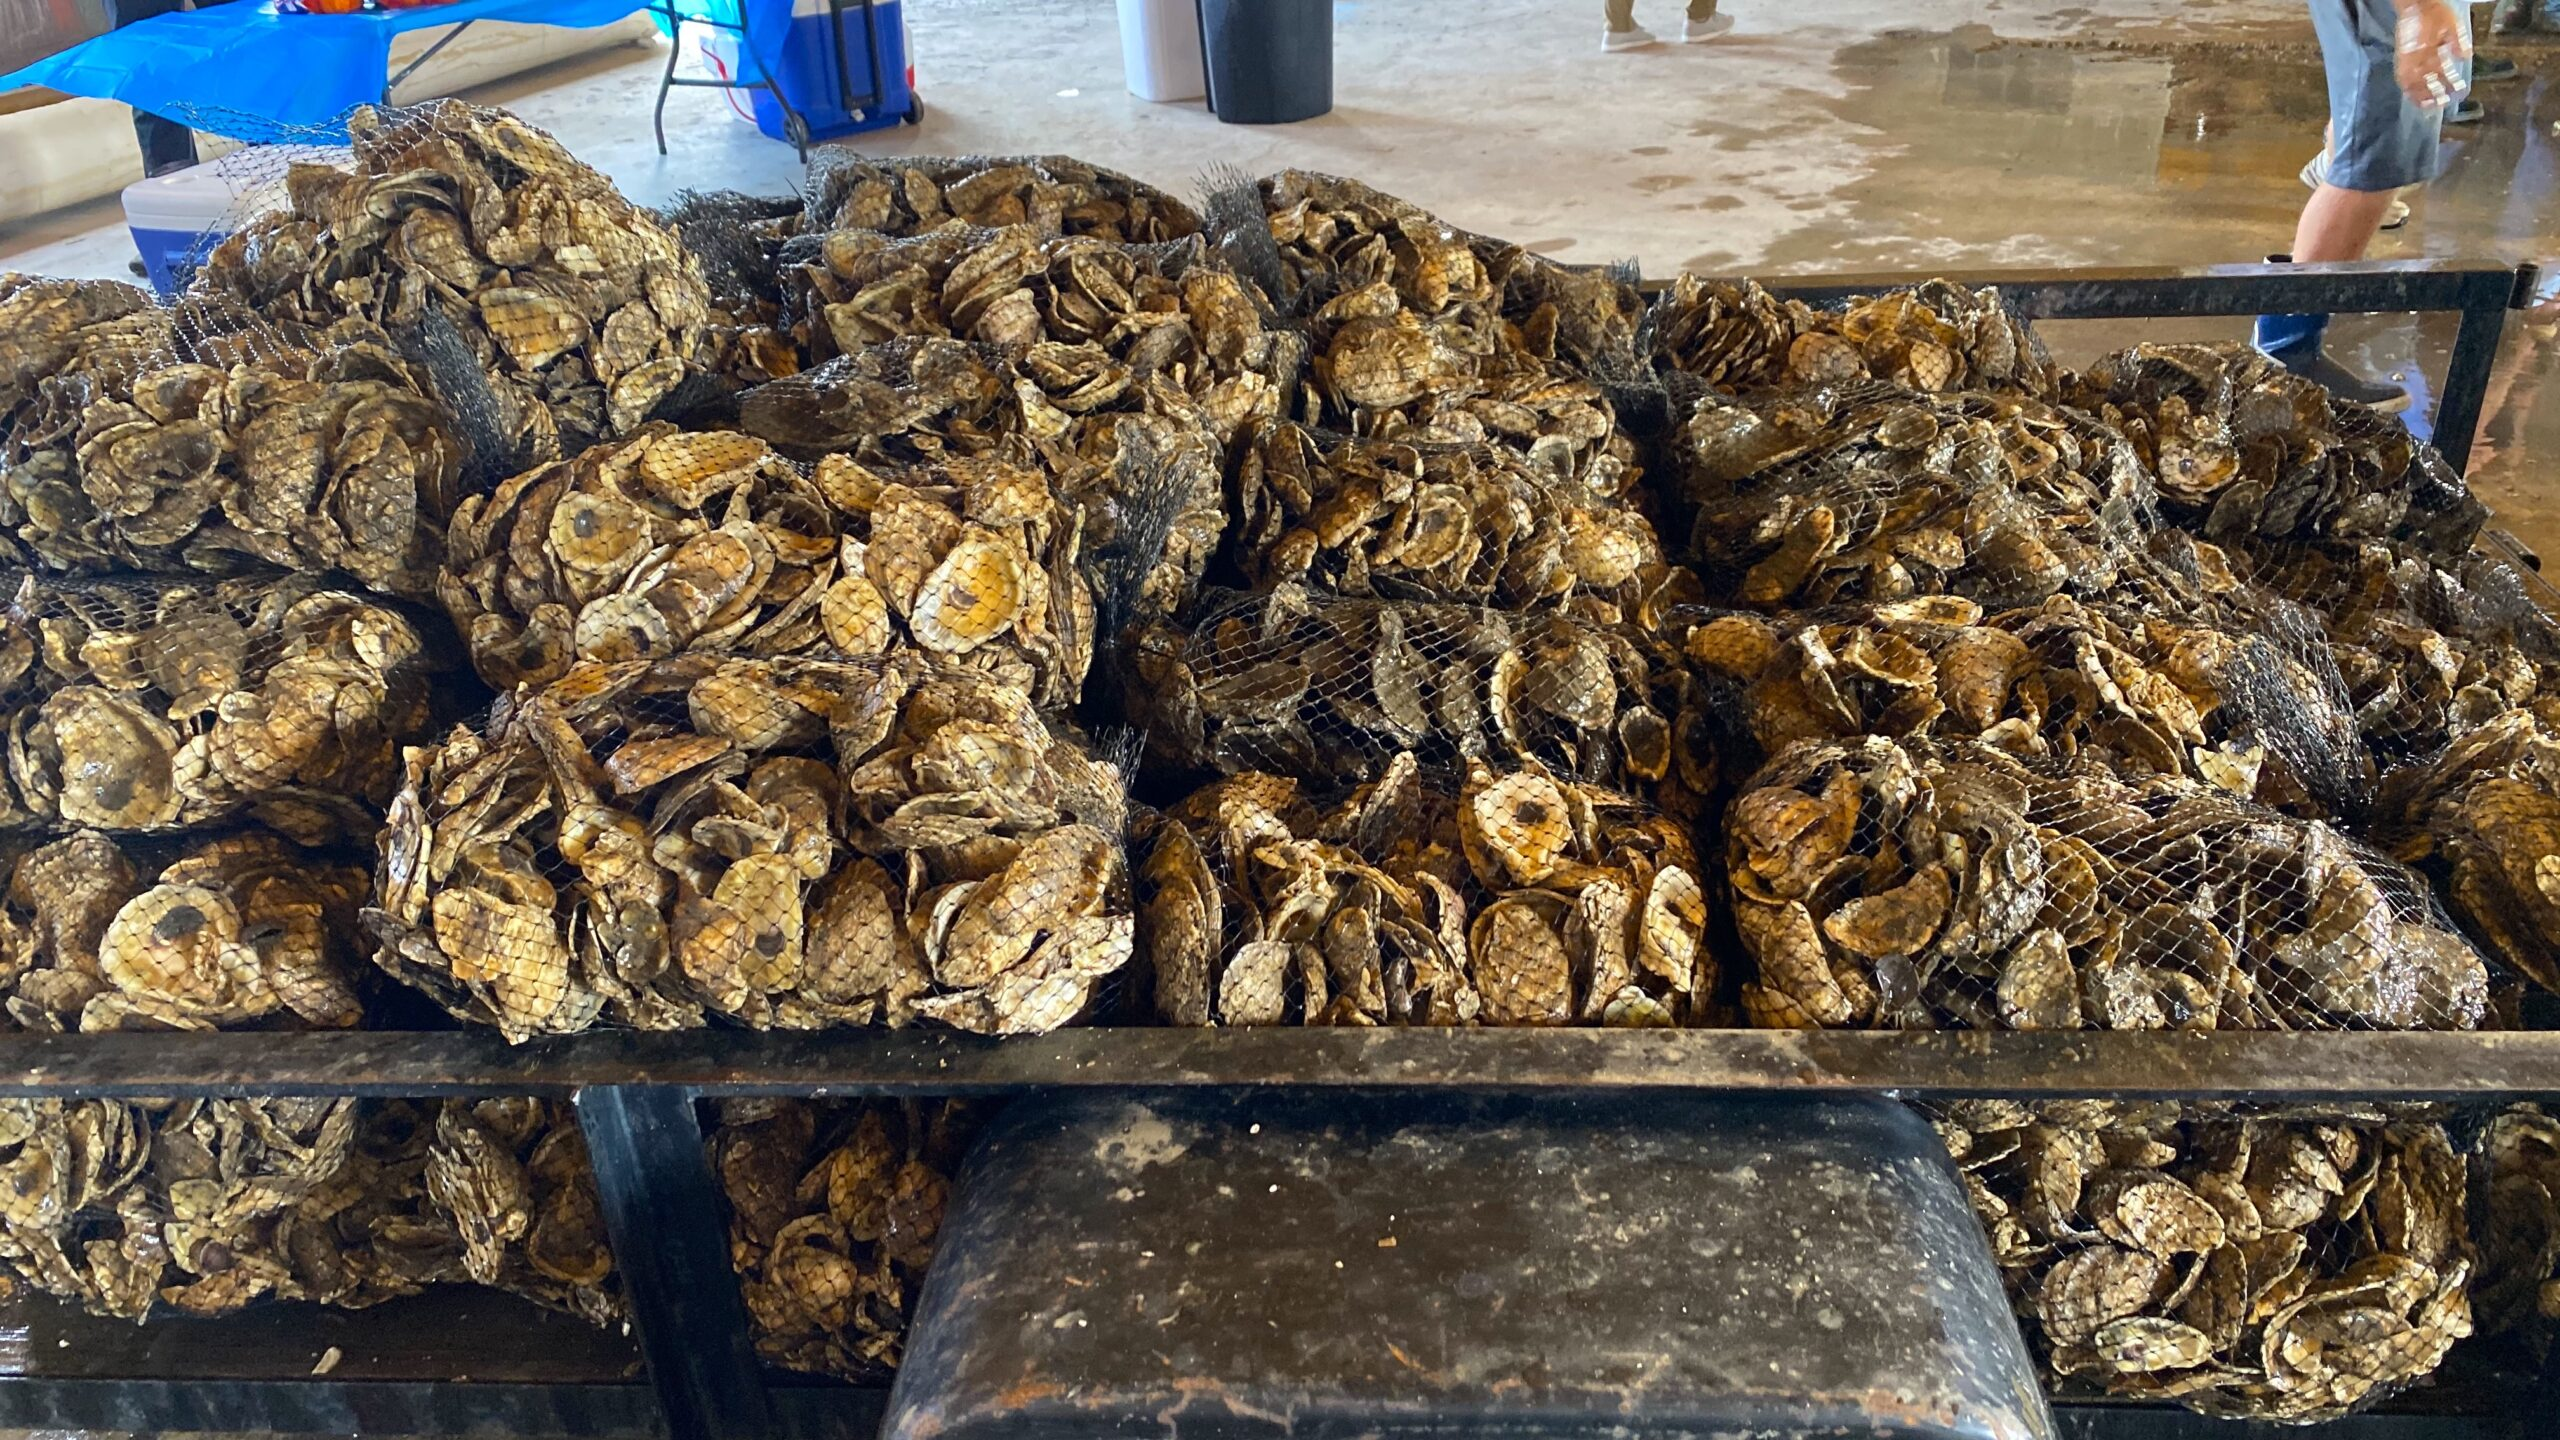 """North Carolina Sea Grant, the NC Farm Bureau, N.C. Division of Marine Fisheries and industry collaborators have joined forces to produce and deploy """"spat-on-shell"""" across three acres this year. The project launched on Jarrett Bay."""